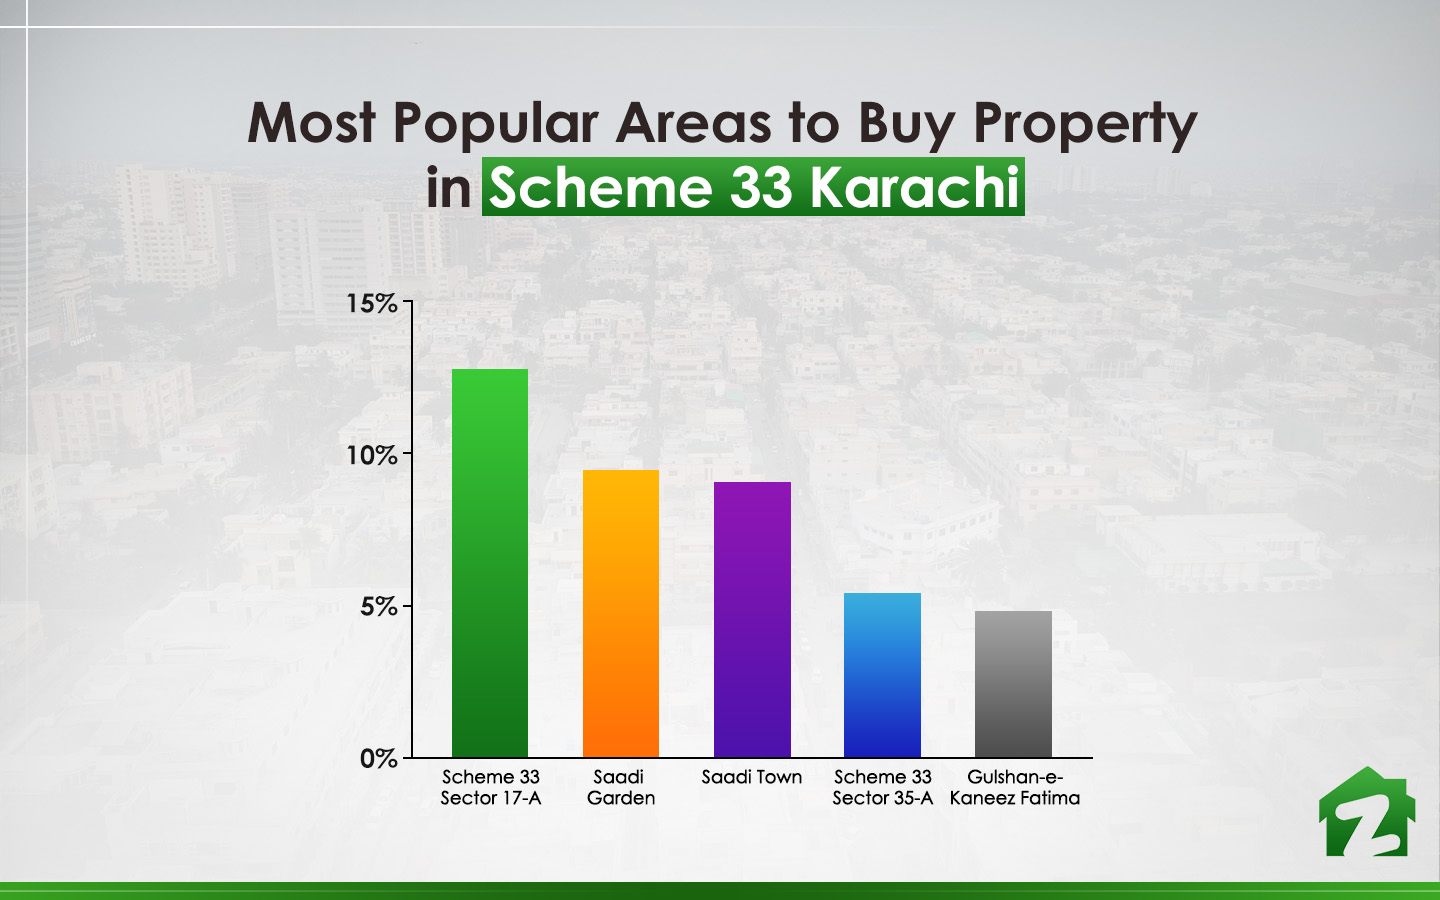 Most popular areas to buy property in Scheme 33